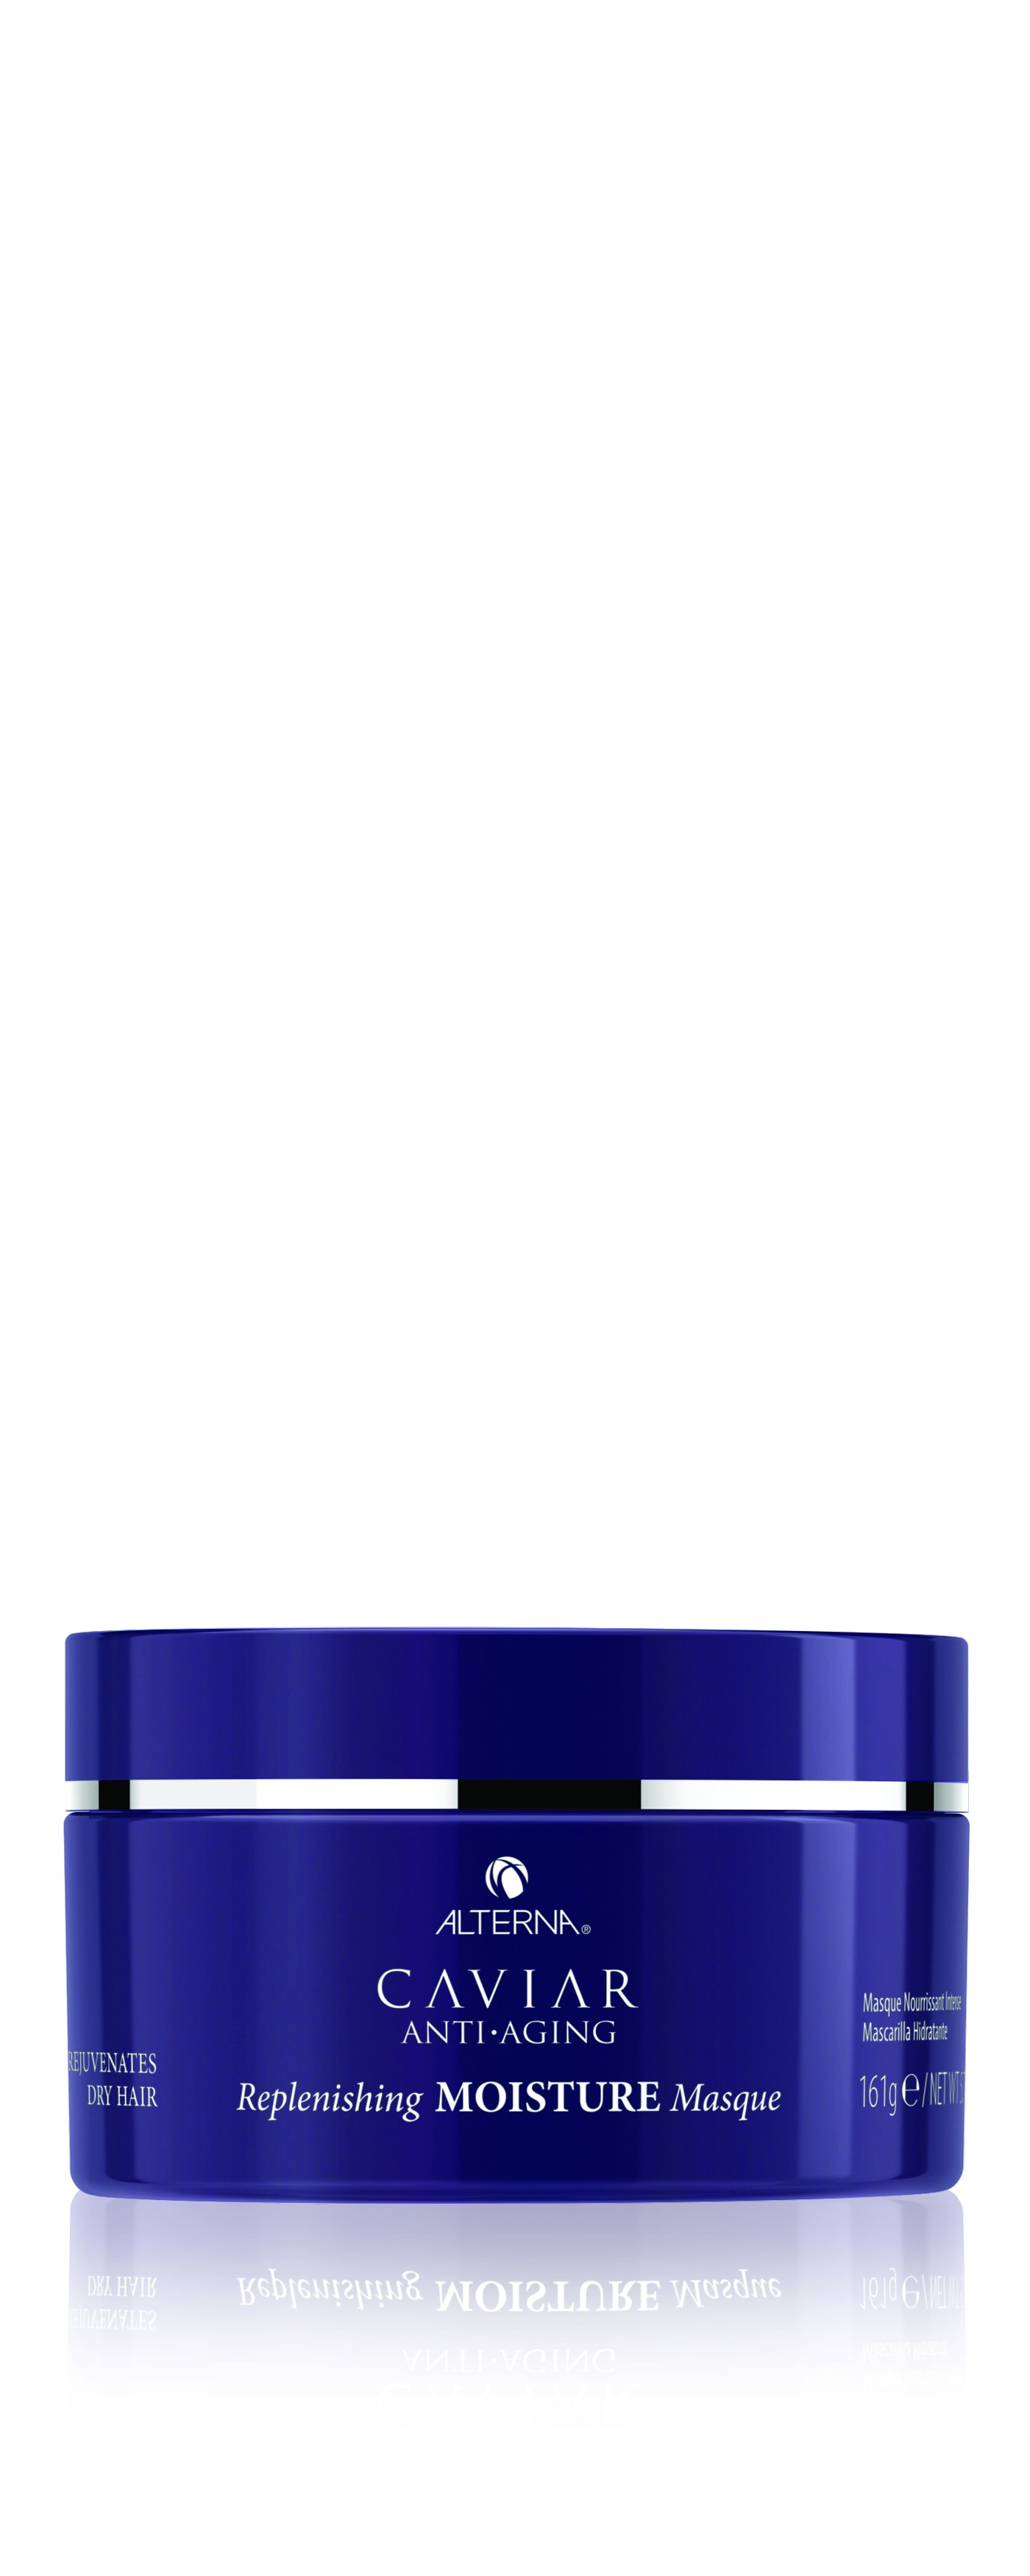 CAVIAR ANTI-AGING REPLENISHING MOISTURE MASQUE (MASCARILLA)